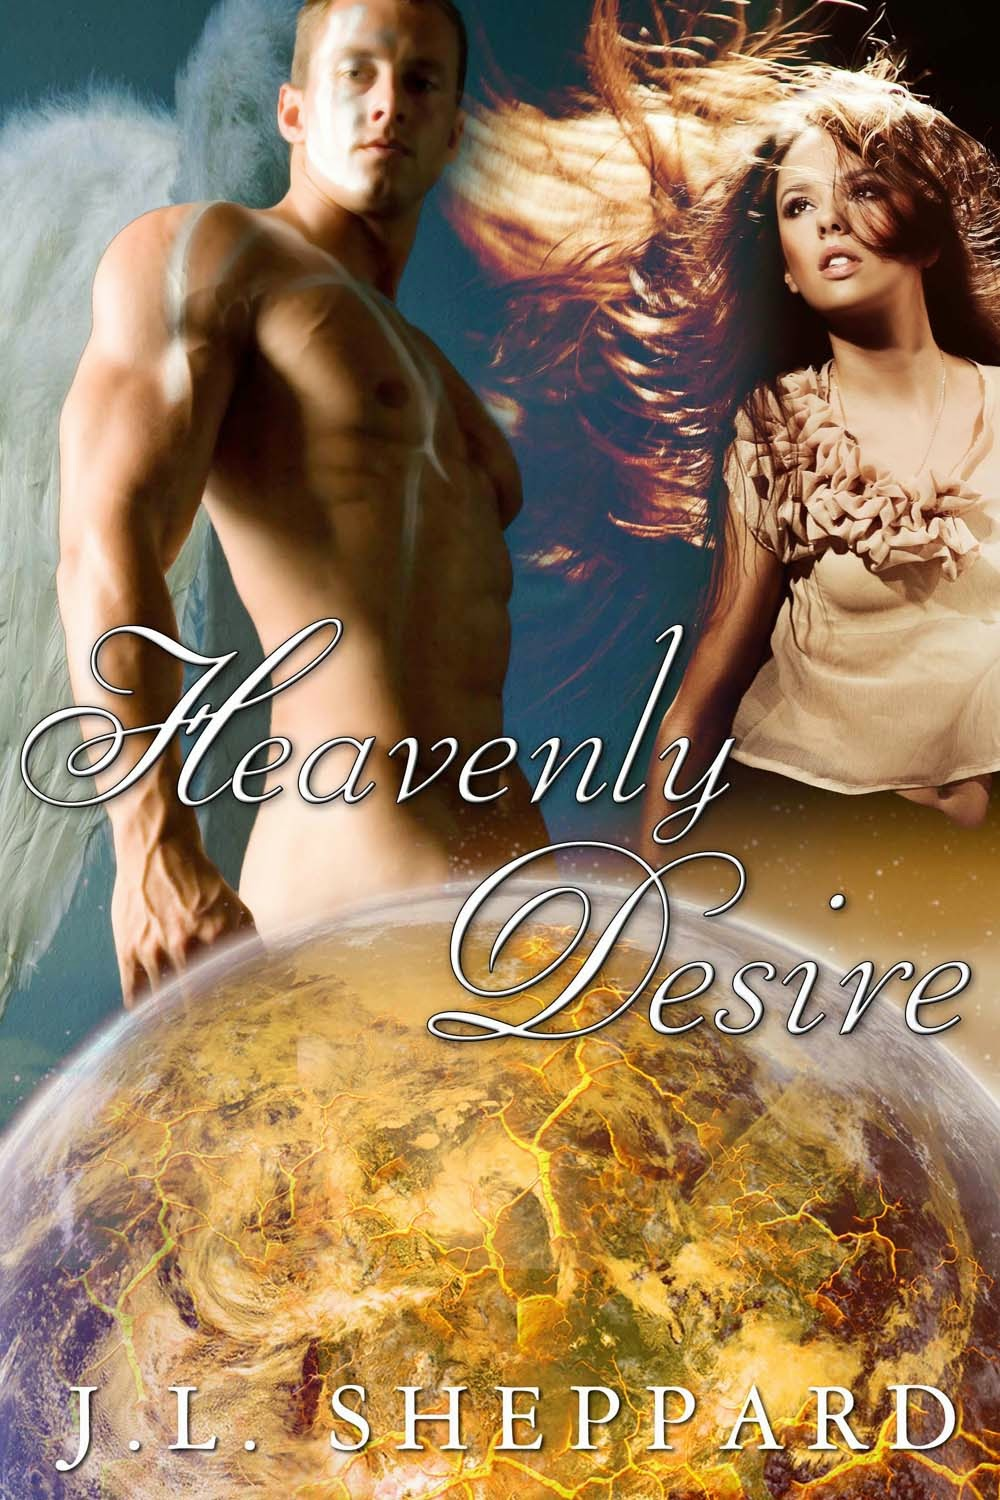 Excerpt for paranormal romance novel Heavenly Desire by JL Sheppard